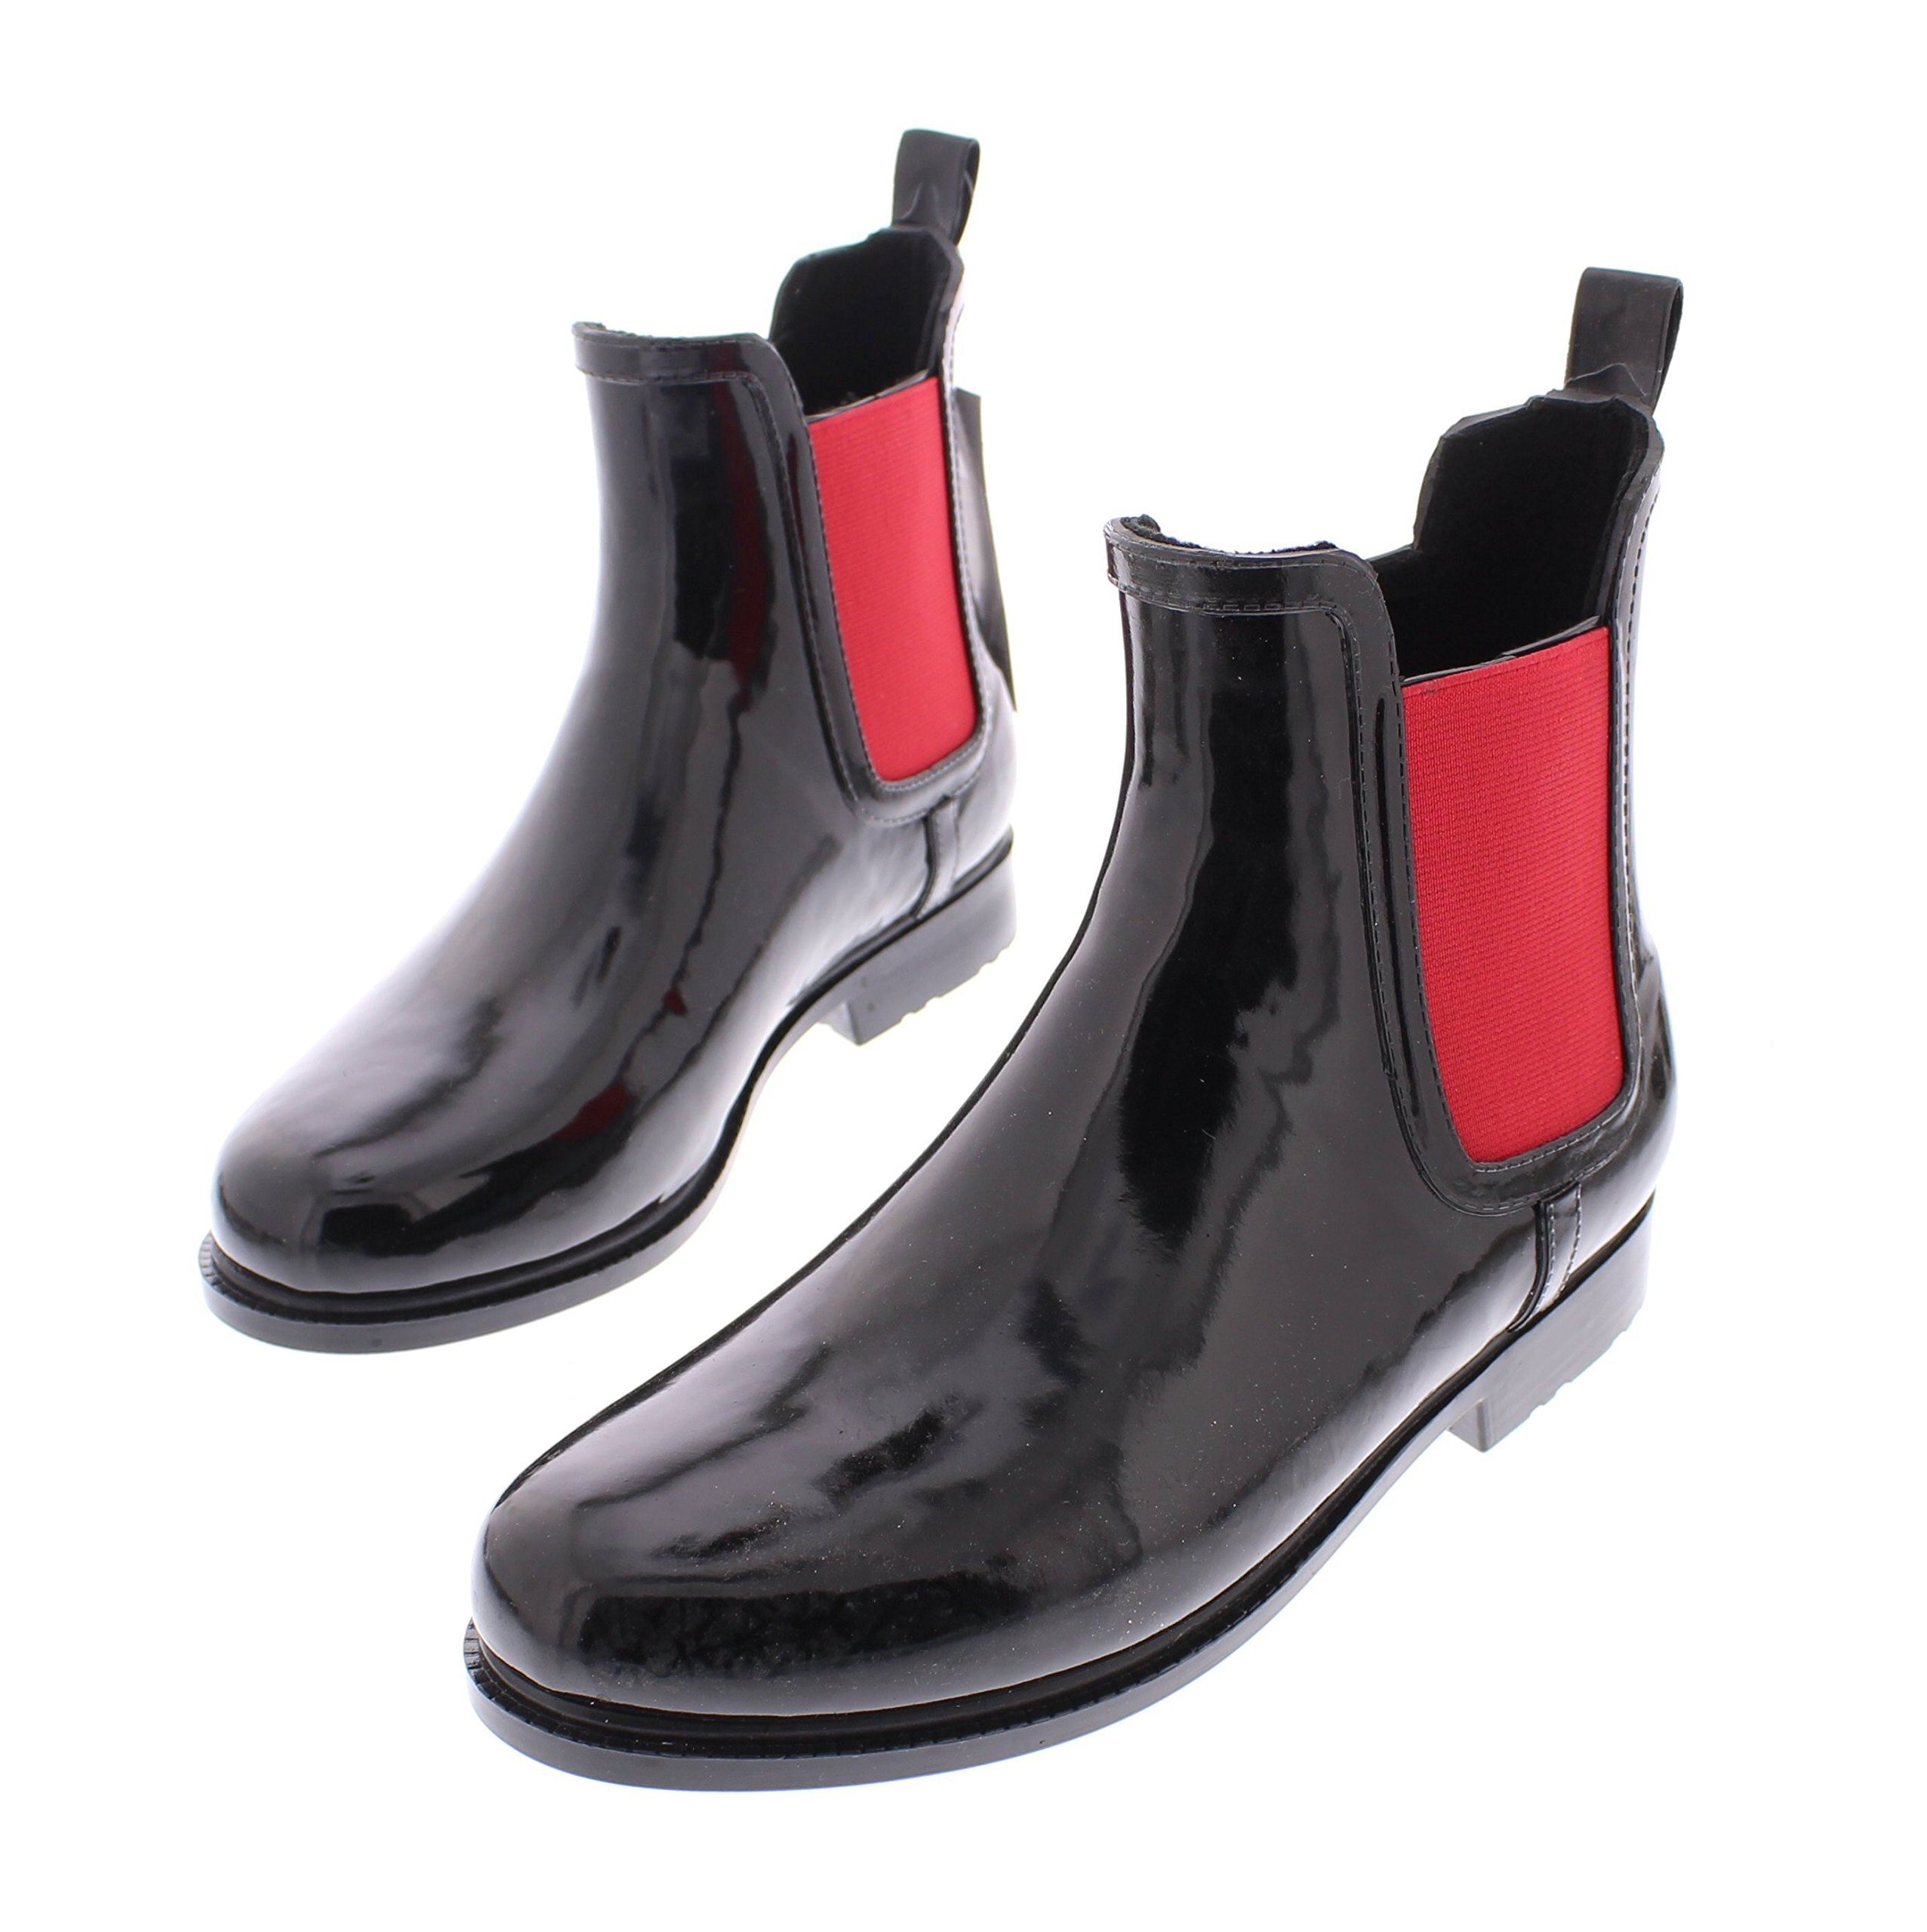 Marilyn Monroe Women's Ankle Length Short Chelsea Rainboot Shoes, Waterproof Jelly Pull On Welly Boots Black Red 10 M